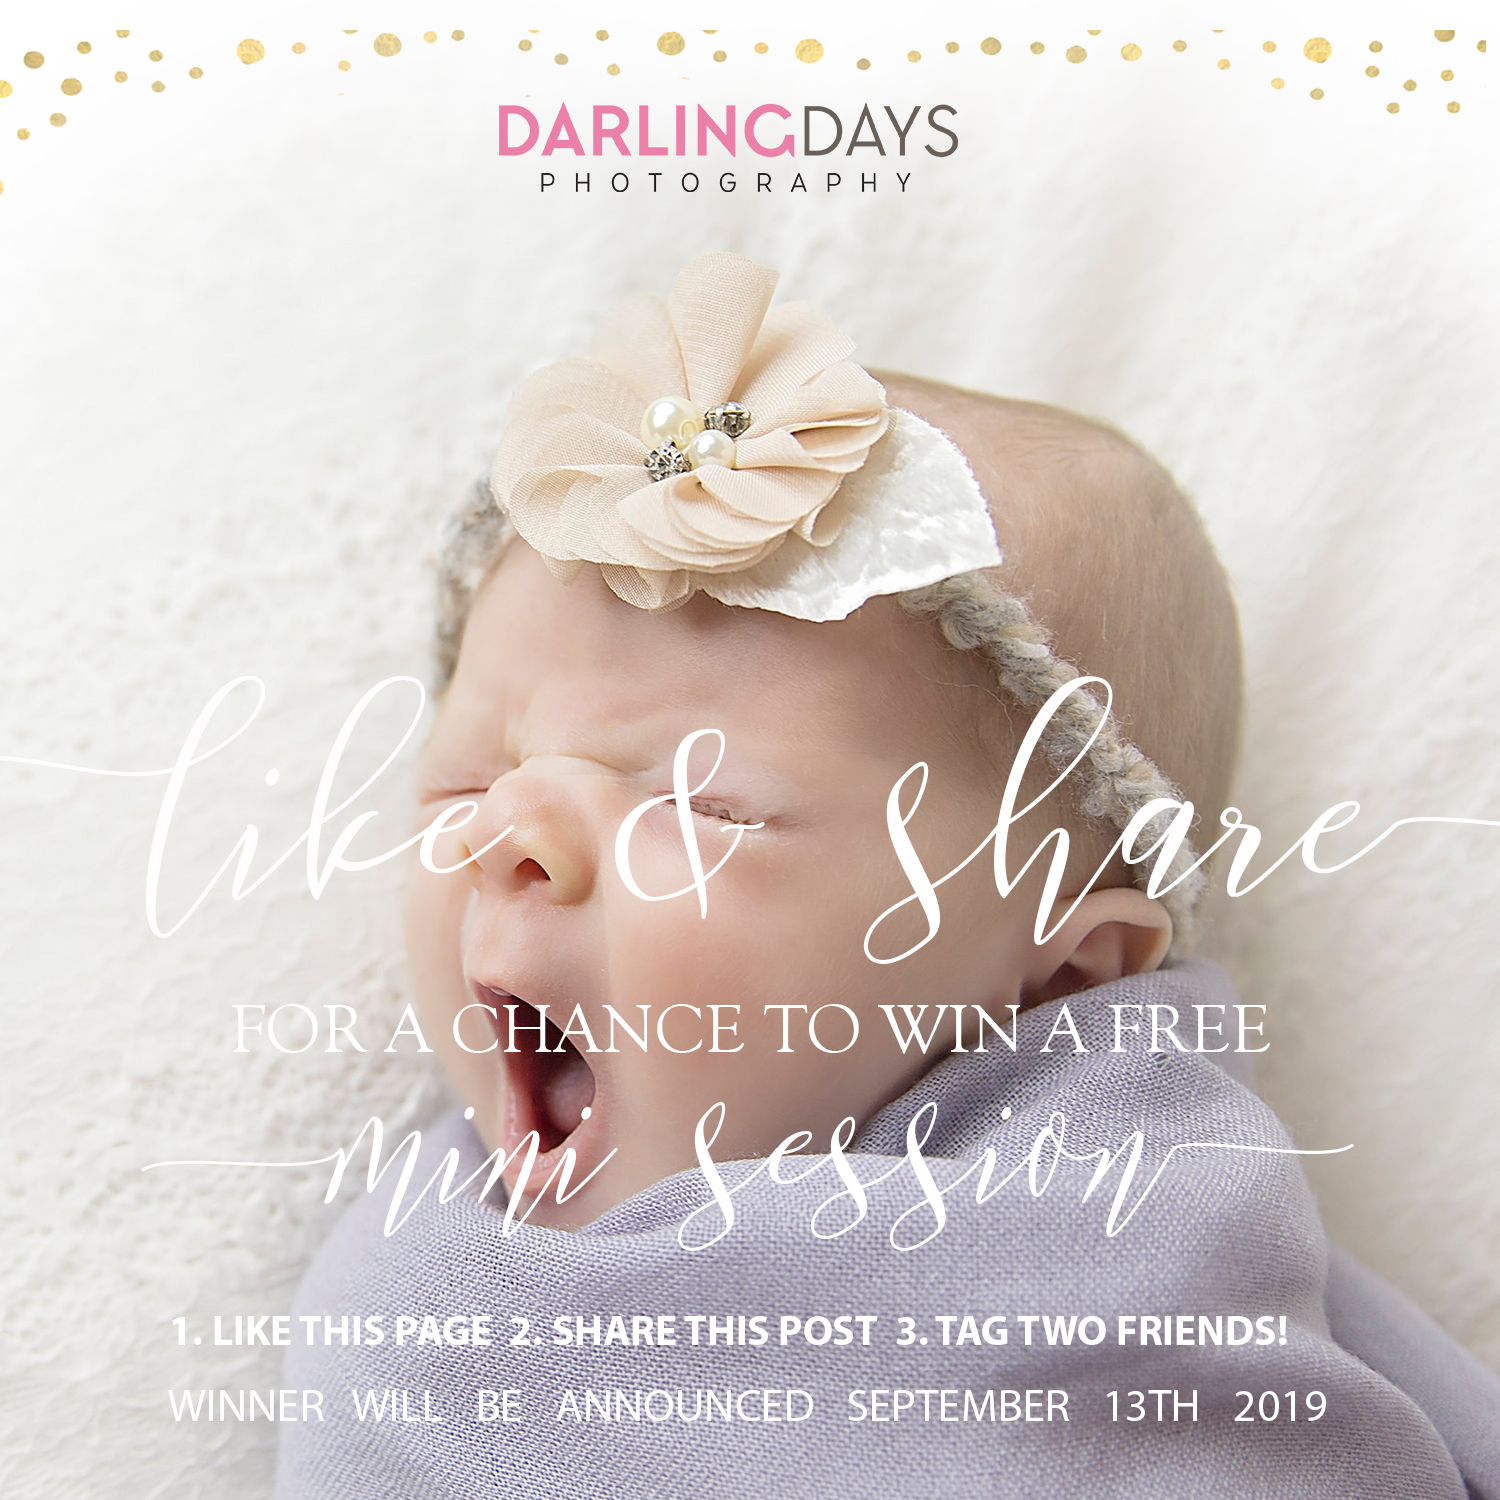 Win A Mini Session - How to enter? 1) Like Darling Days Photography on Instagram and/or Facebook 2) Share the contest post on Instagram and/or Facebook 3) Tag 2 friends on Instagram and/or FacebookBONUS ENTRY: CLICK HEREIt's that simple! We will be announcing the winner on September 13th, 2019 on social media.What if you don't win? We are still having a promotion this month. 20% off all sessions booked in September!